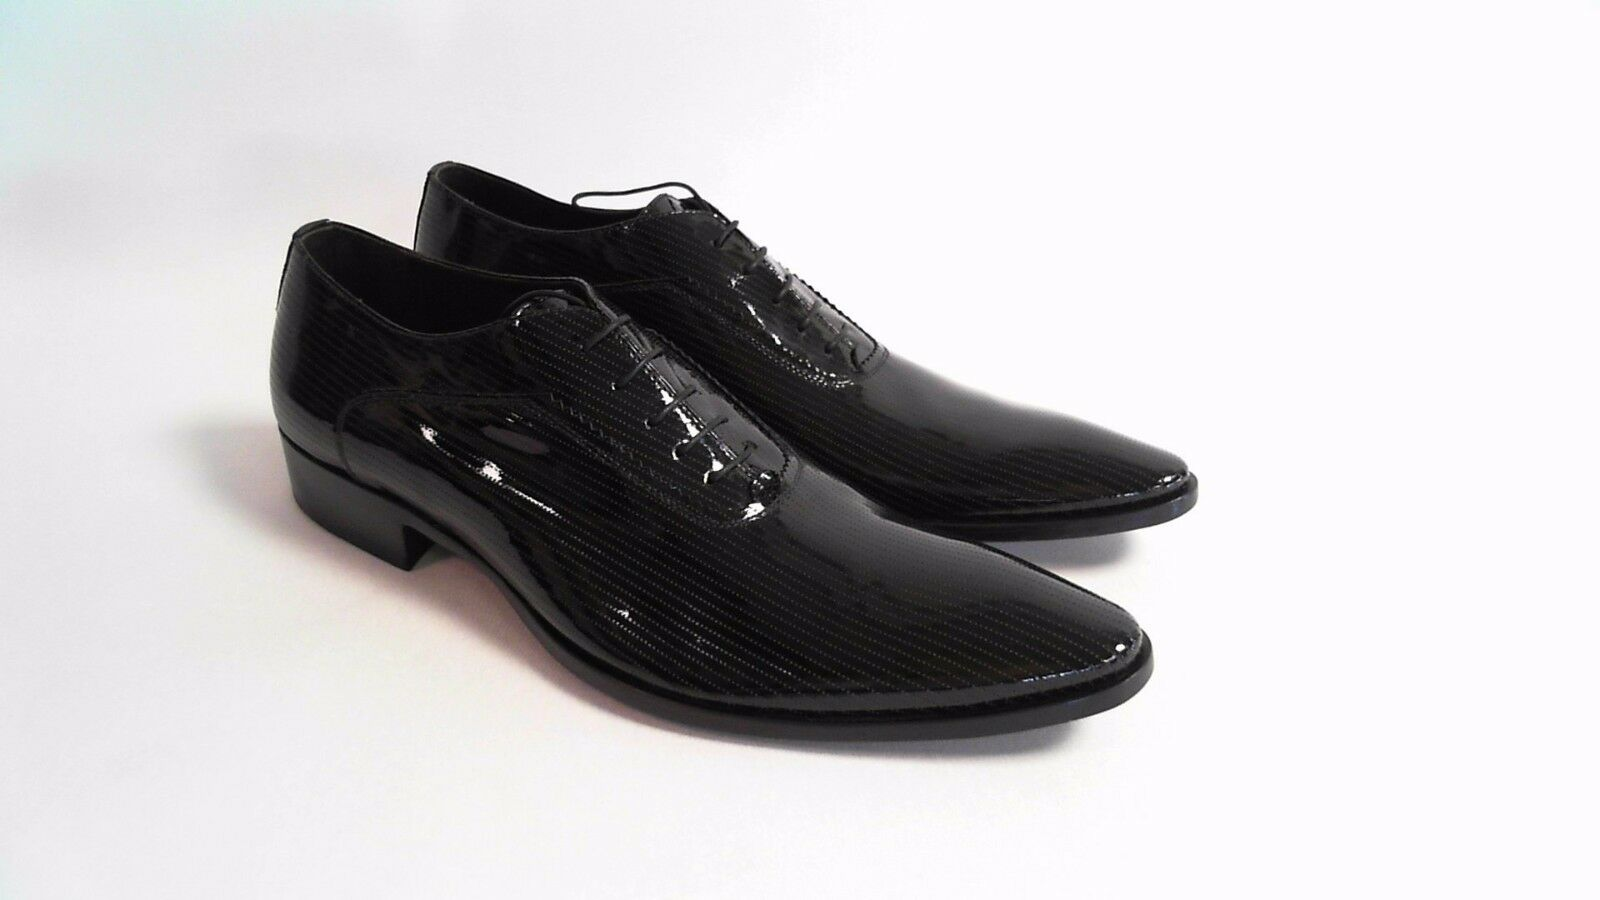 Bespoke HQ Vero Cuoio Vernice Nero PU Men's Shoes Dotted Italian Patent Leather